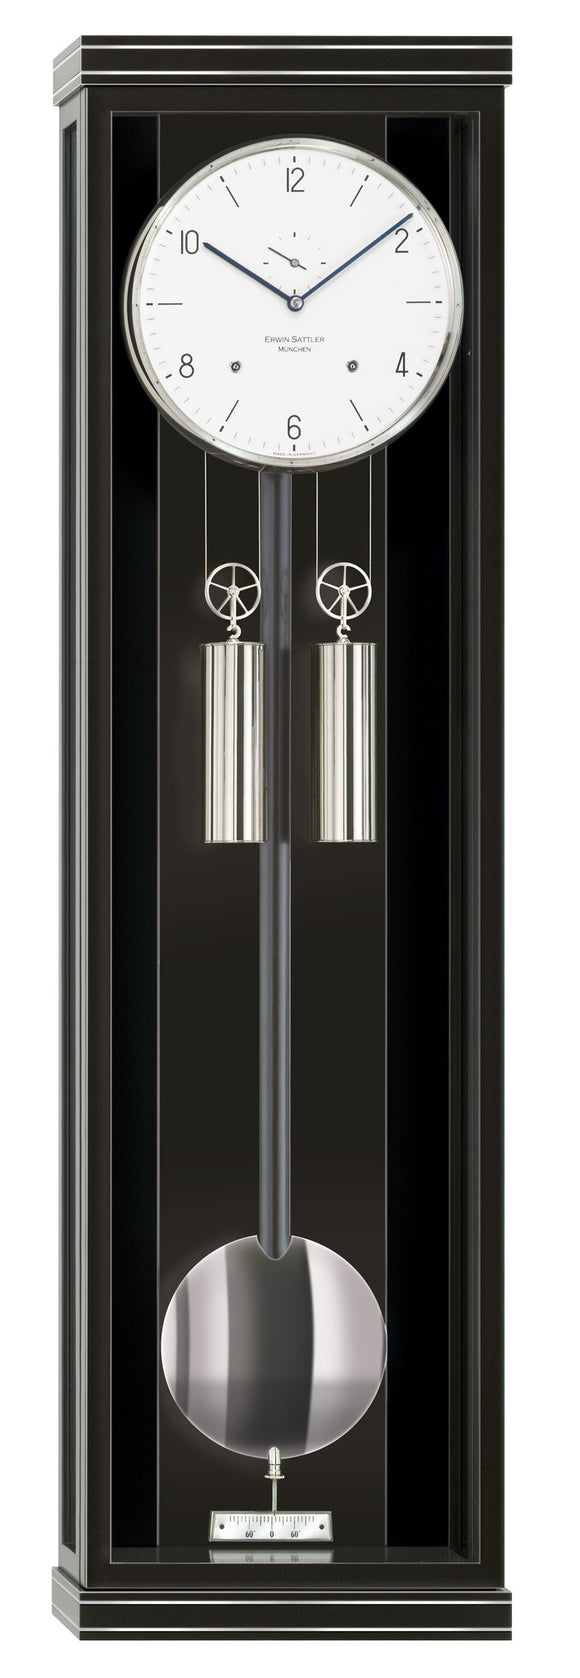 Erwin Sattler Classica S100M Modern Precision Pendulum Clock with chime - The Luxury Well